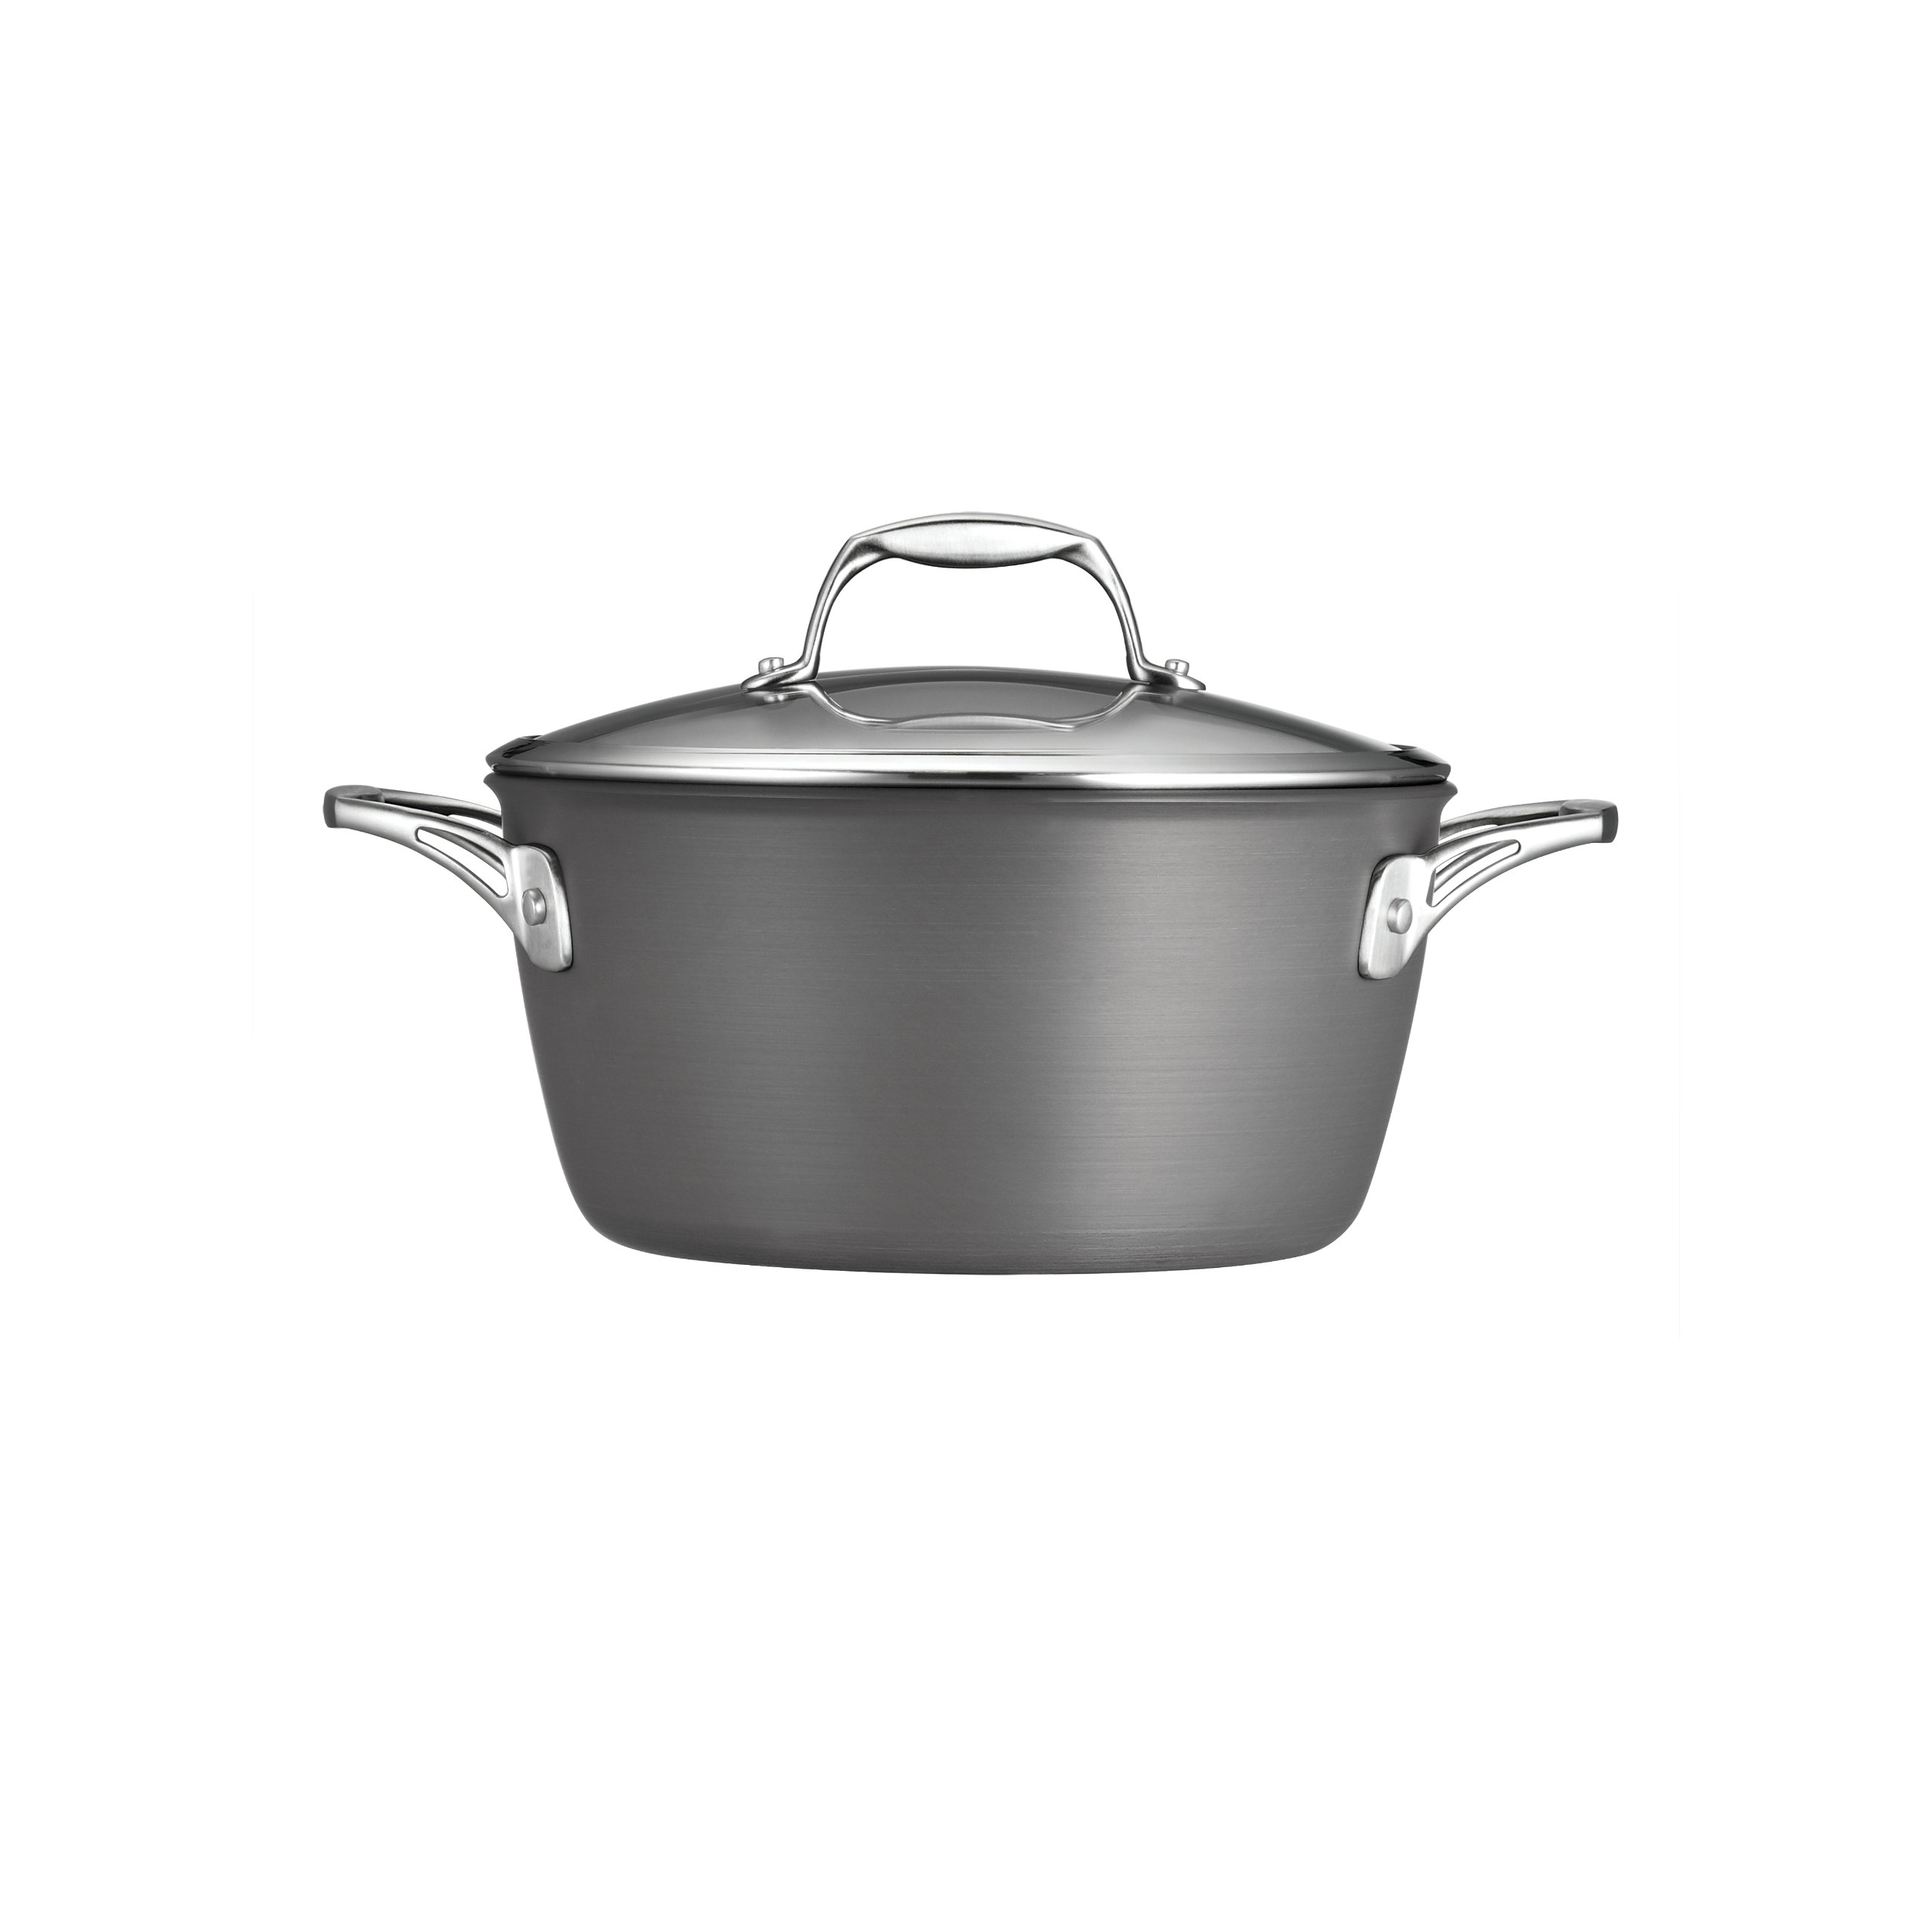 Tramontina 80123/042DS  Gourmet Heavy-Gauge Aluminum Nonstick Covered Dutch Oven, 5-Quart, Hard Anodized by Tramontina (Image #1)